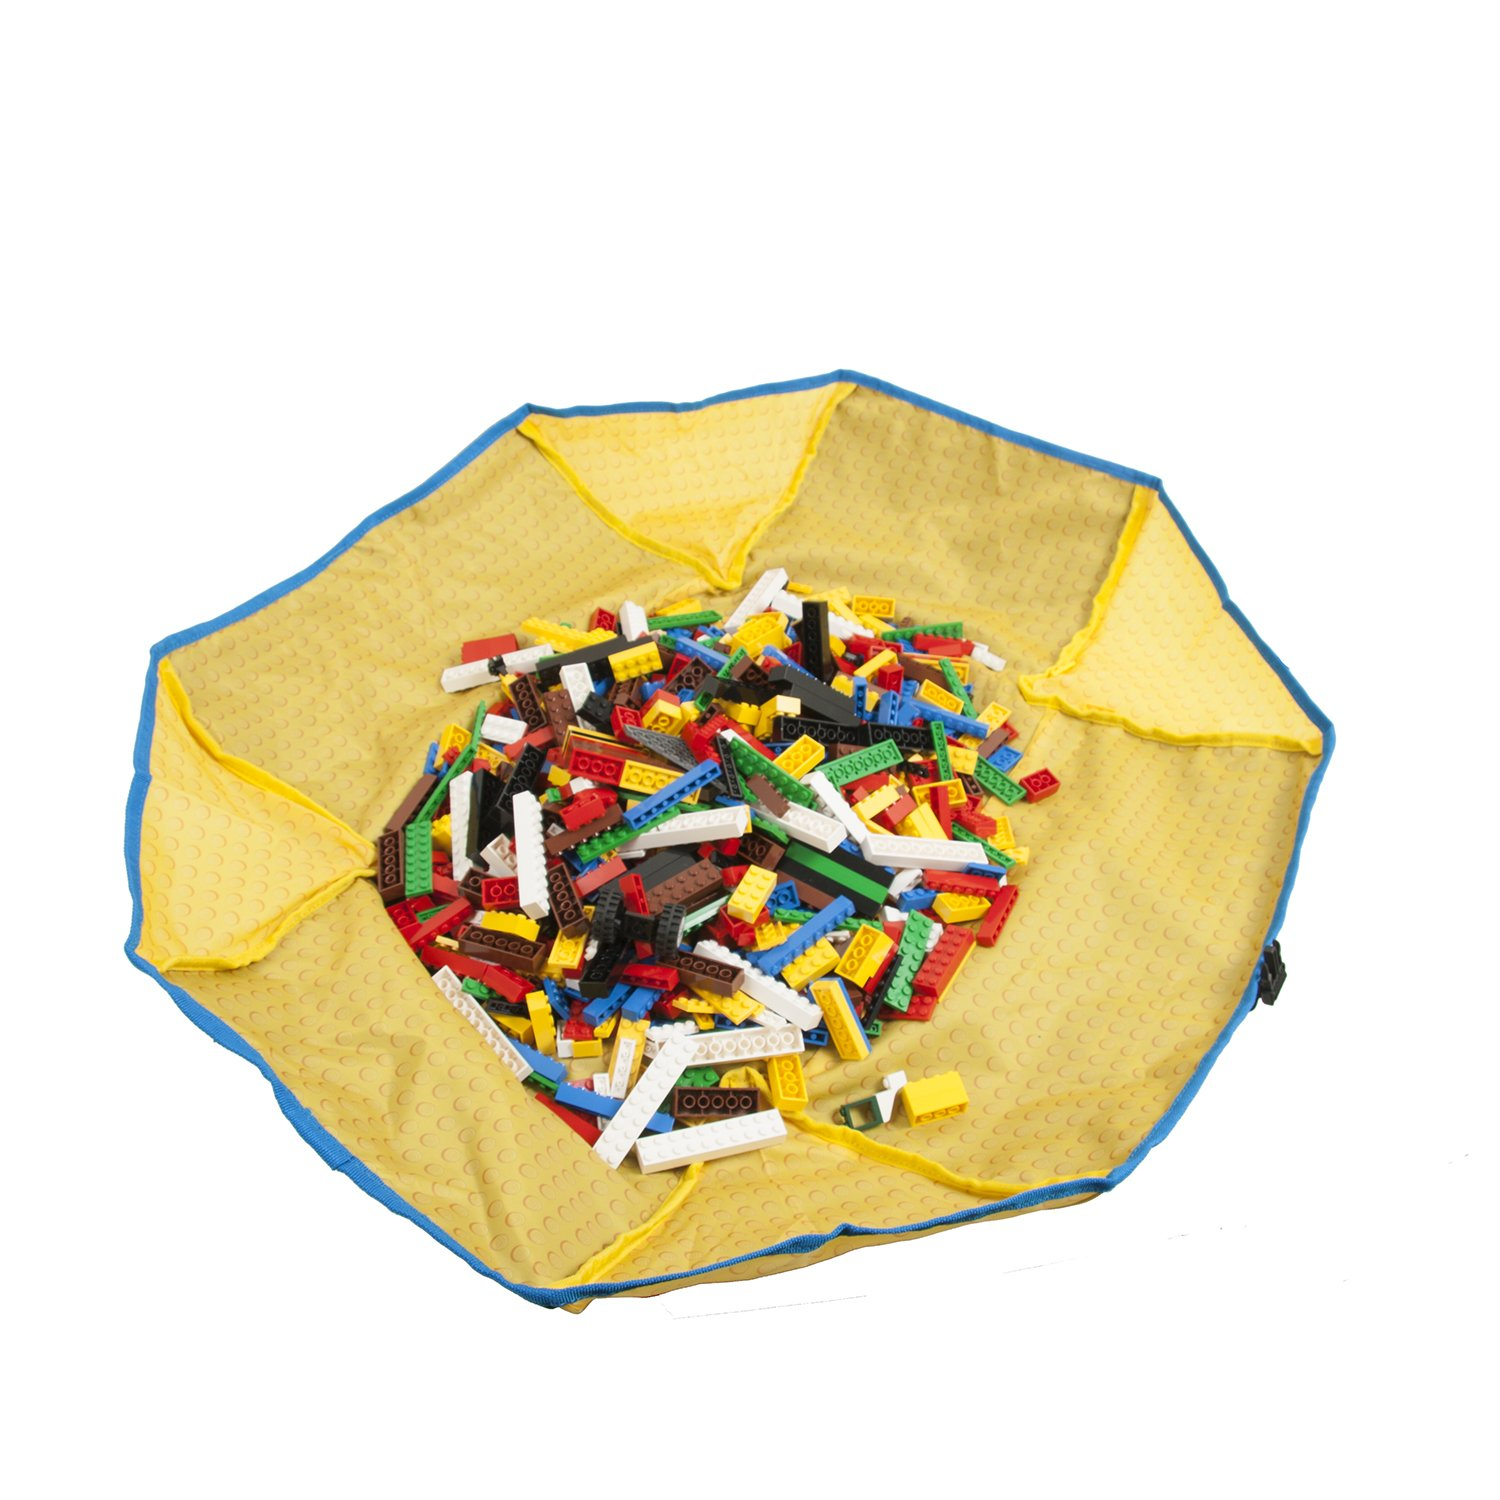 LEGO 4-Piece Tote and Play Mat